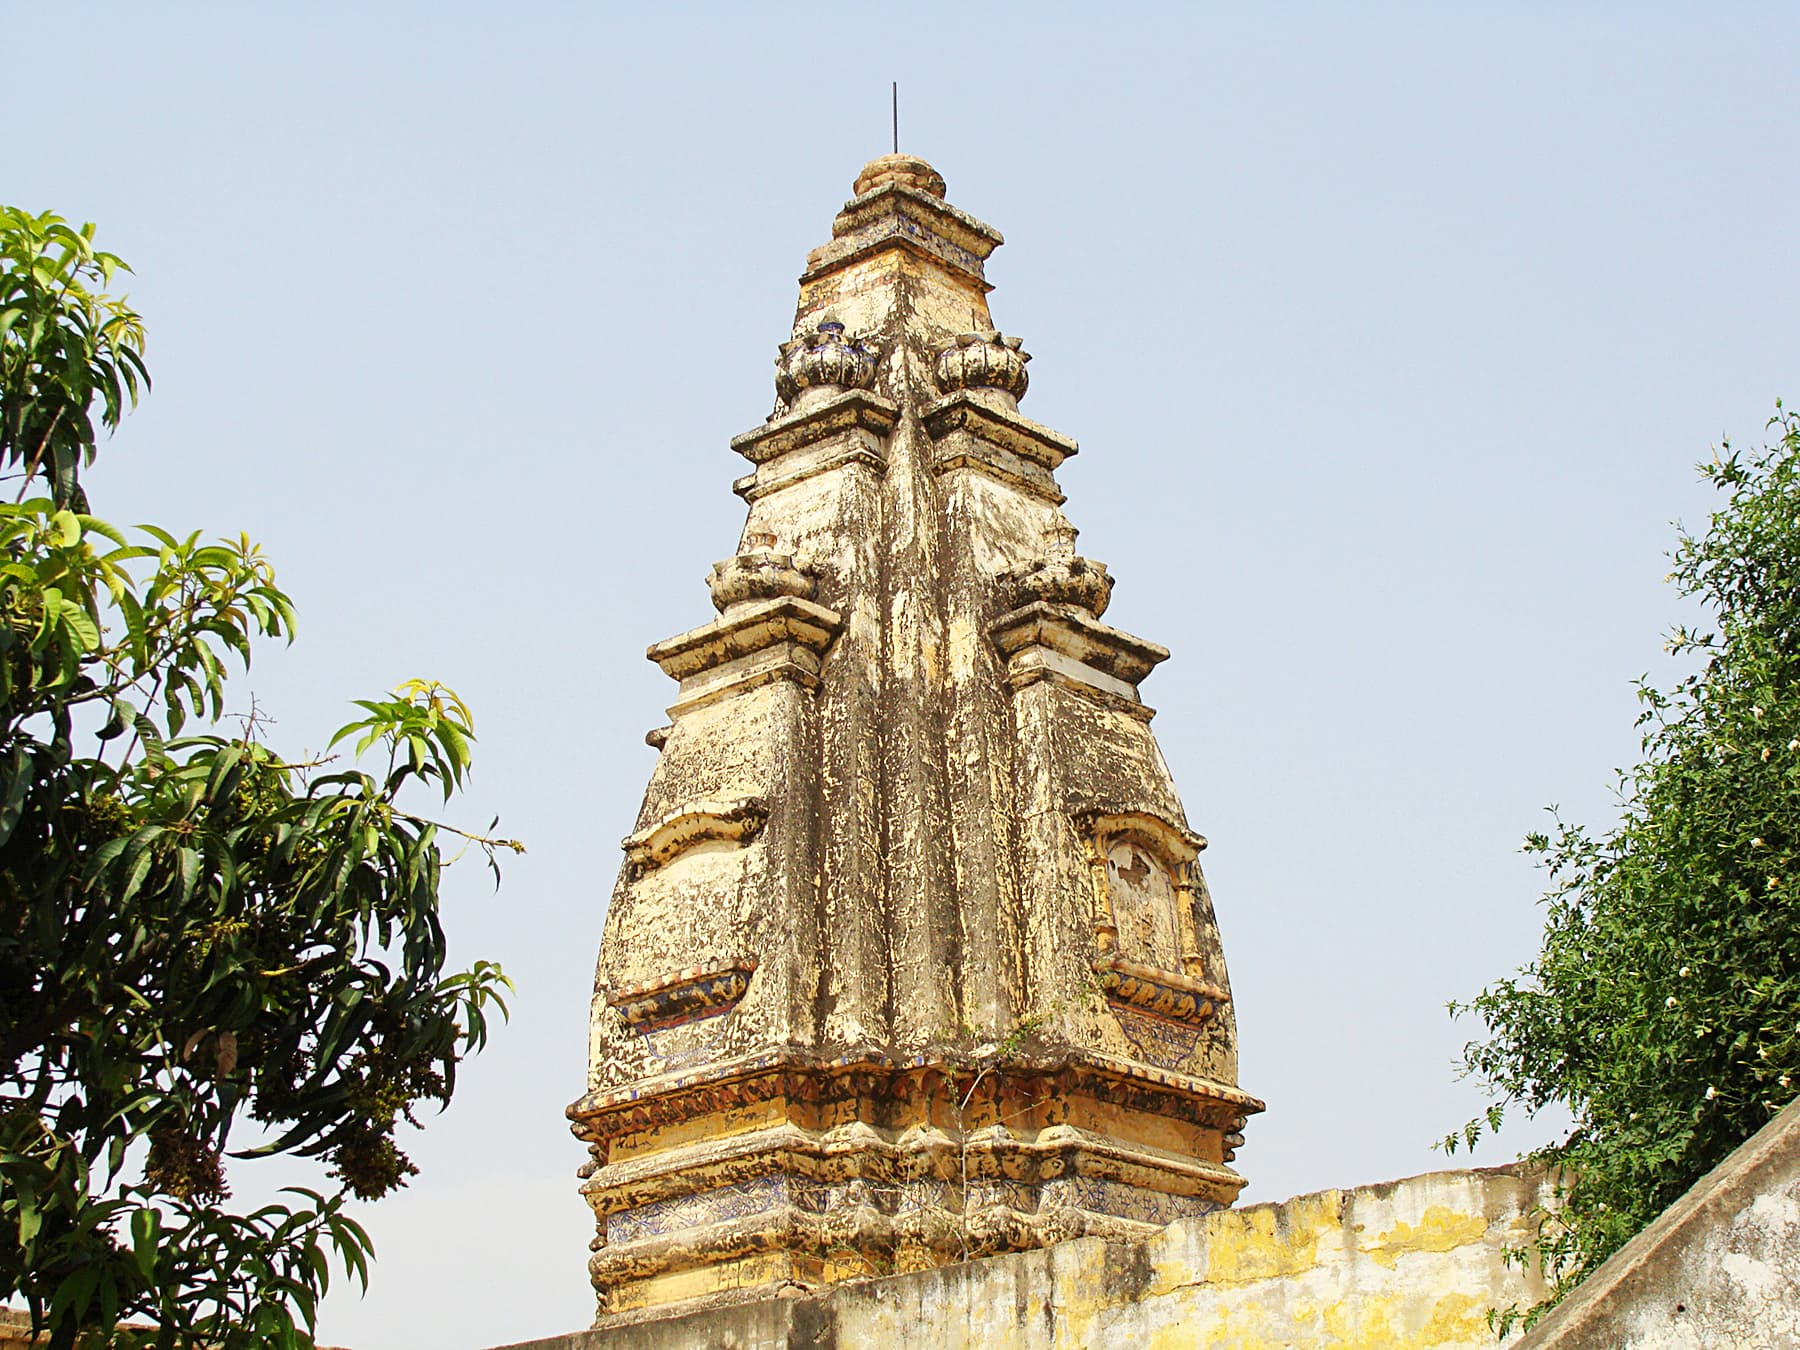 The shikara of Mohra Bhatta Temple.